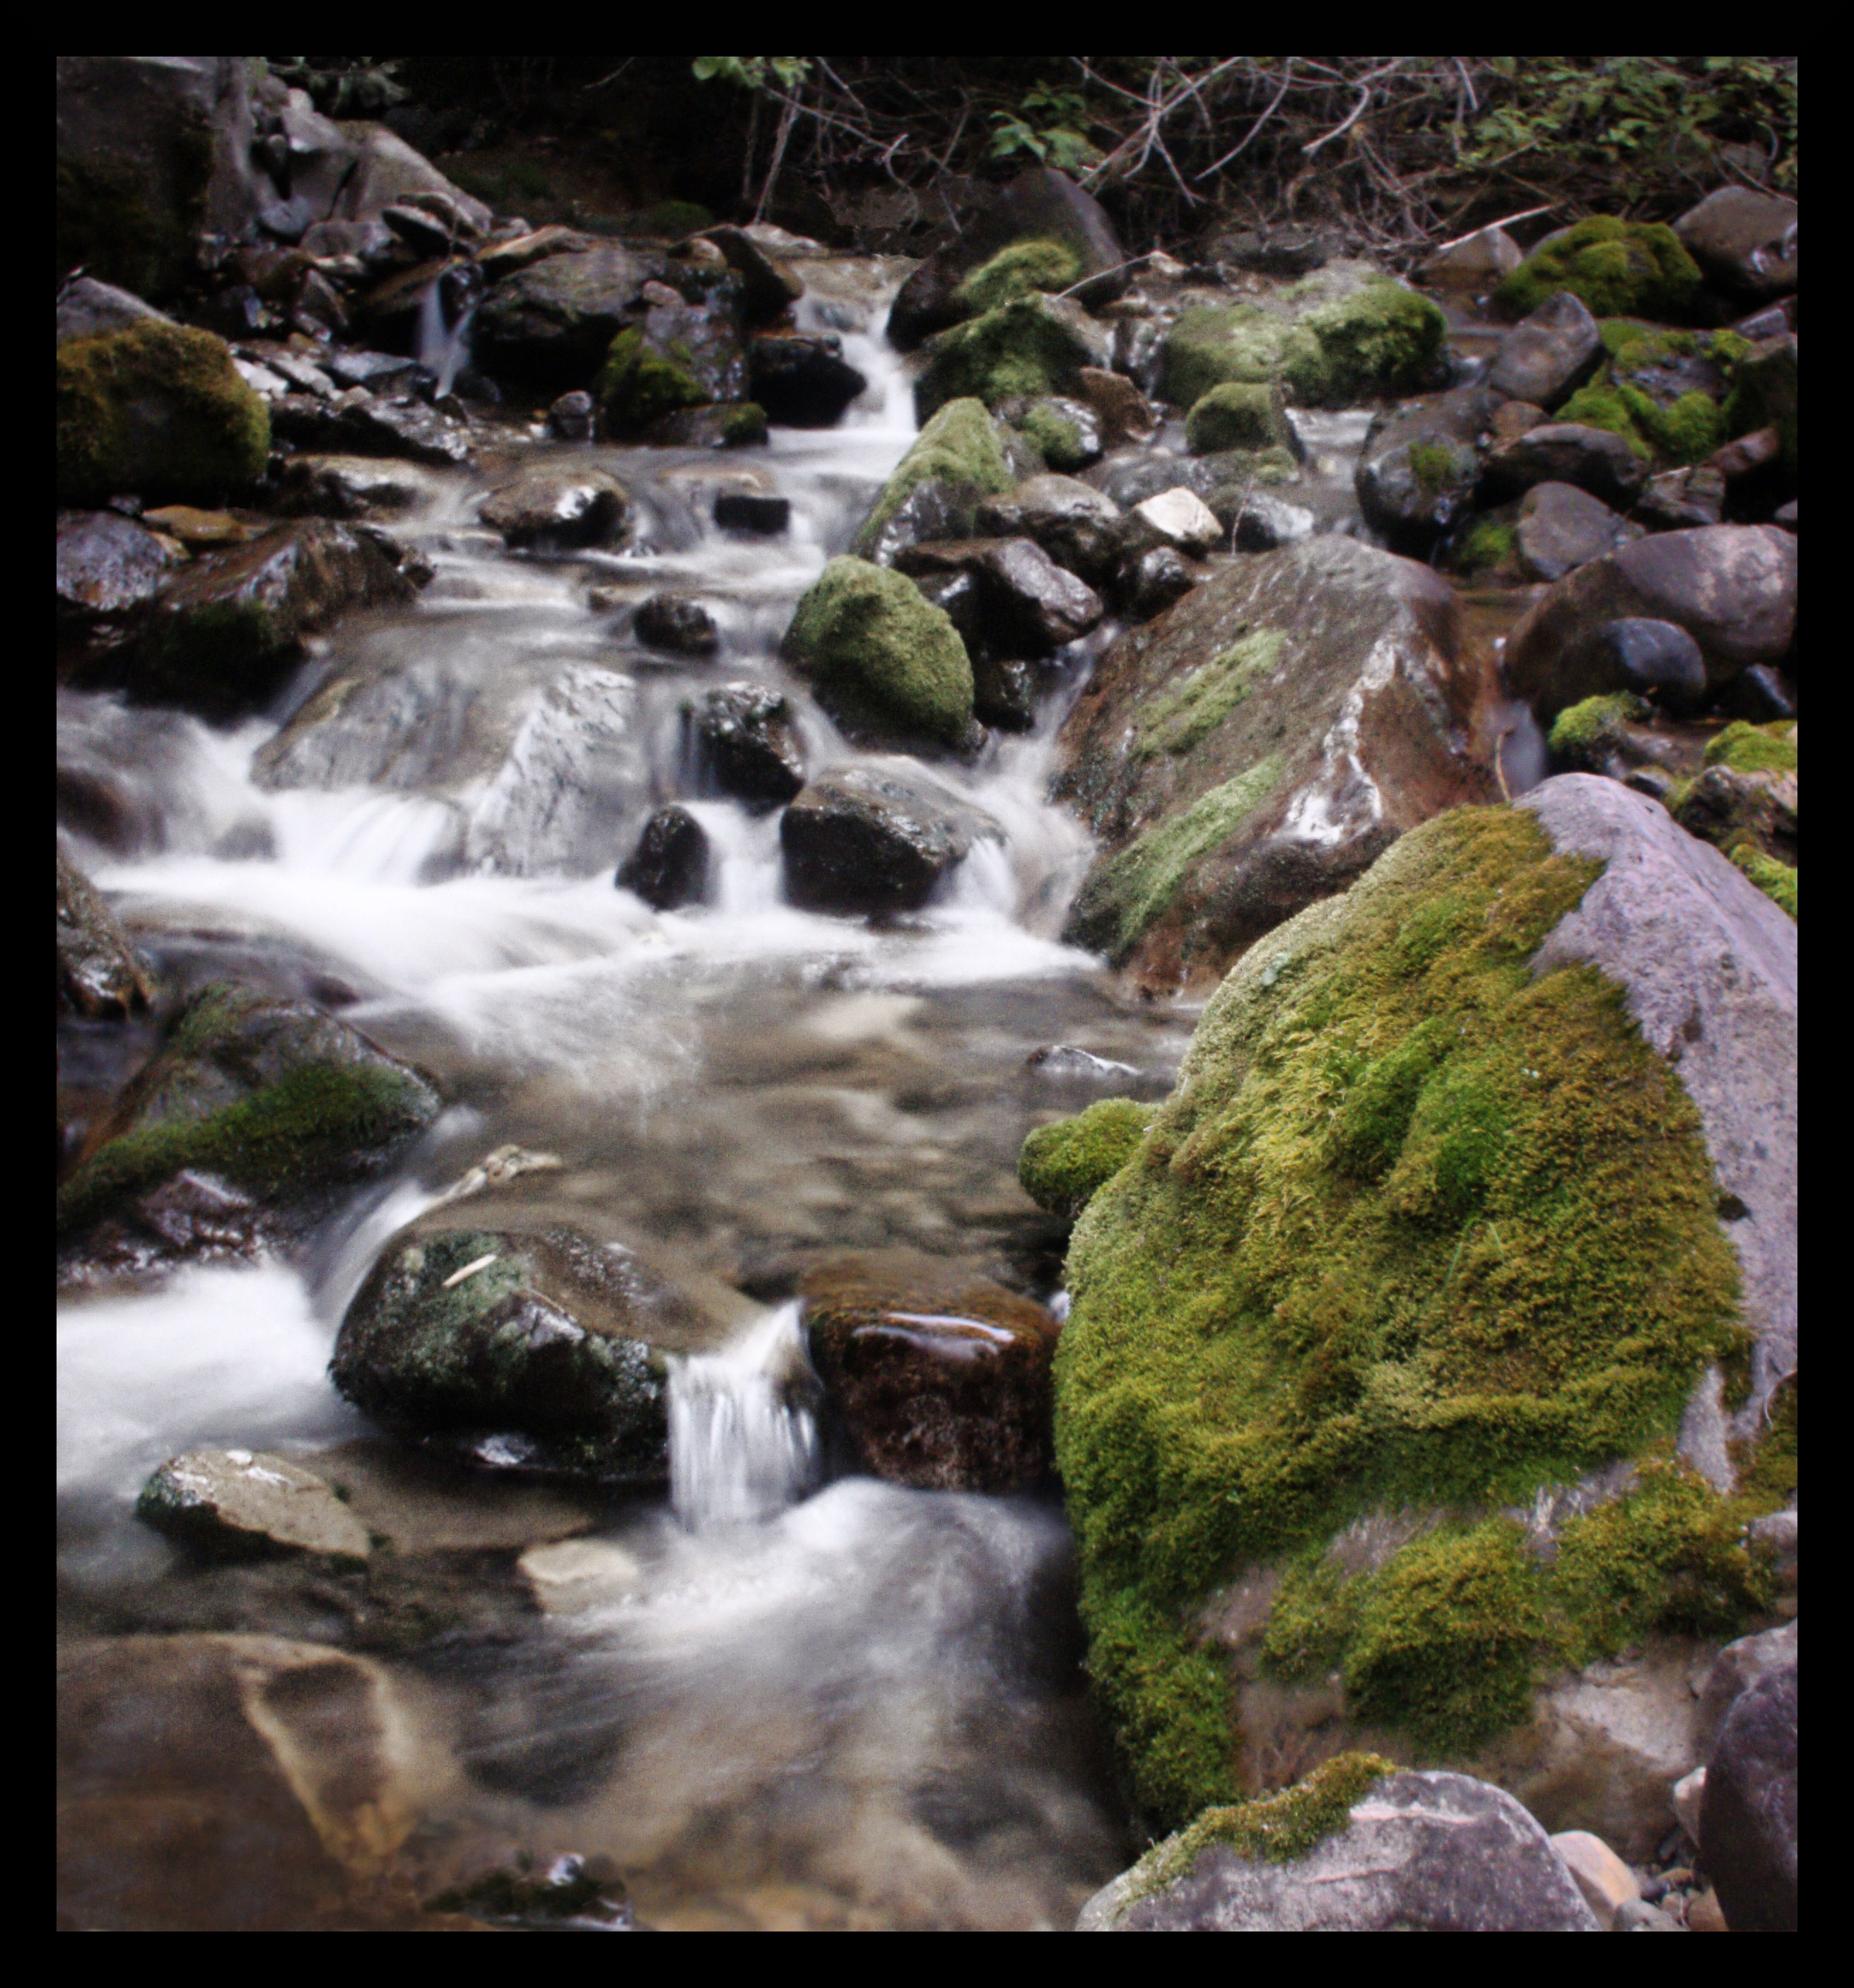 A river rushes through rocks